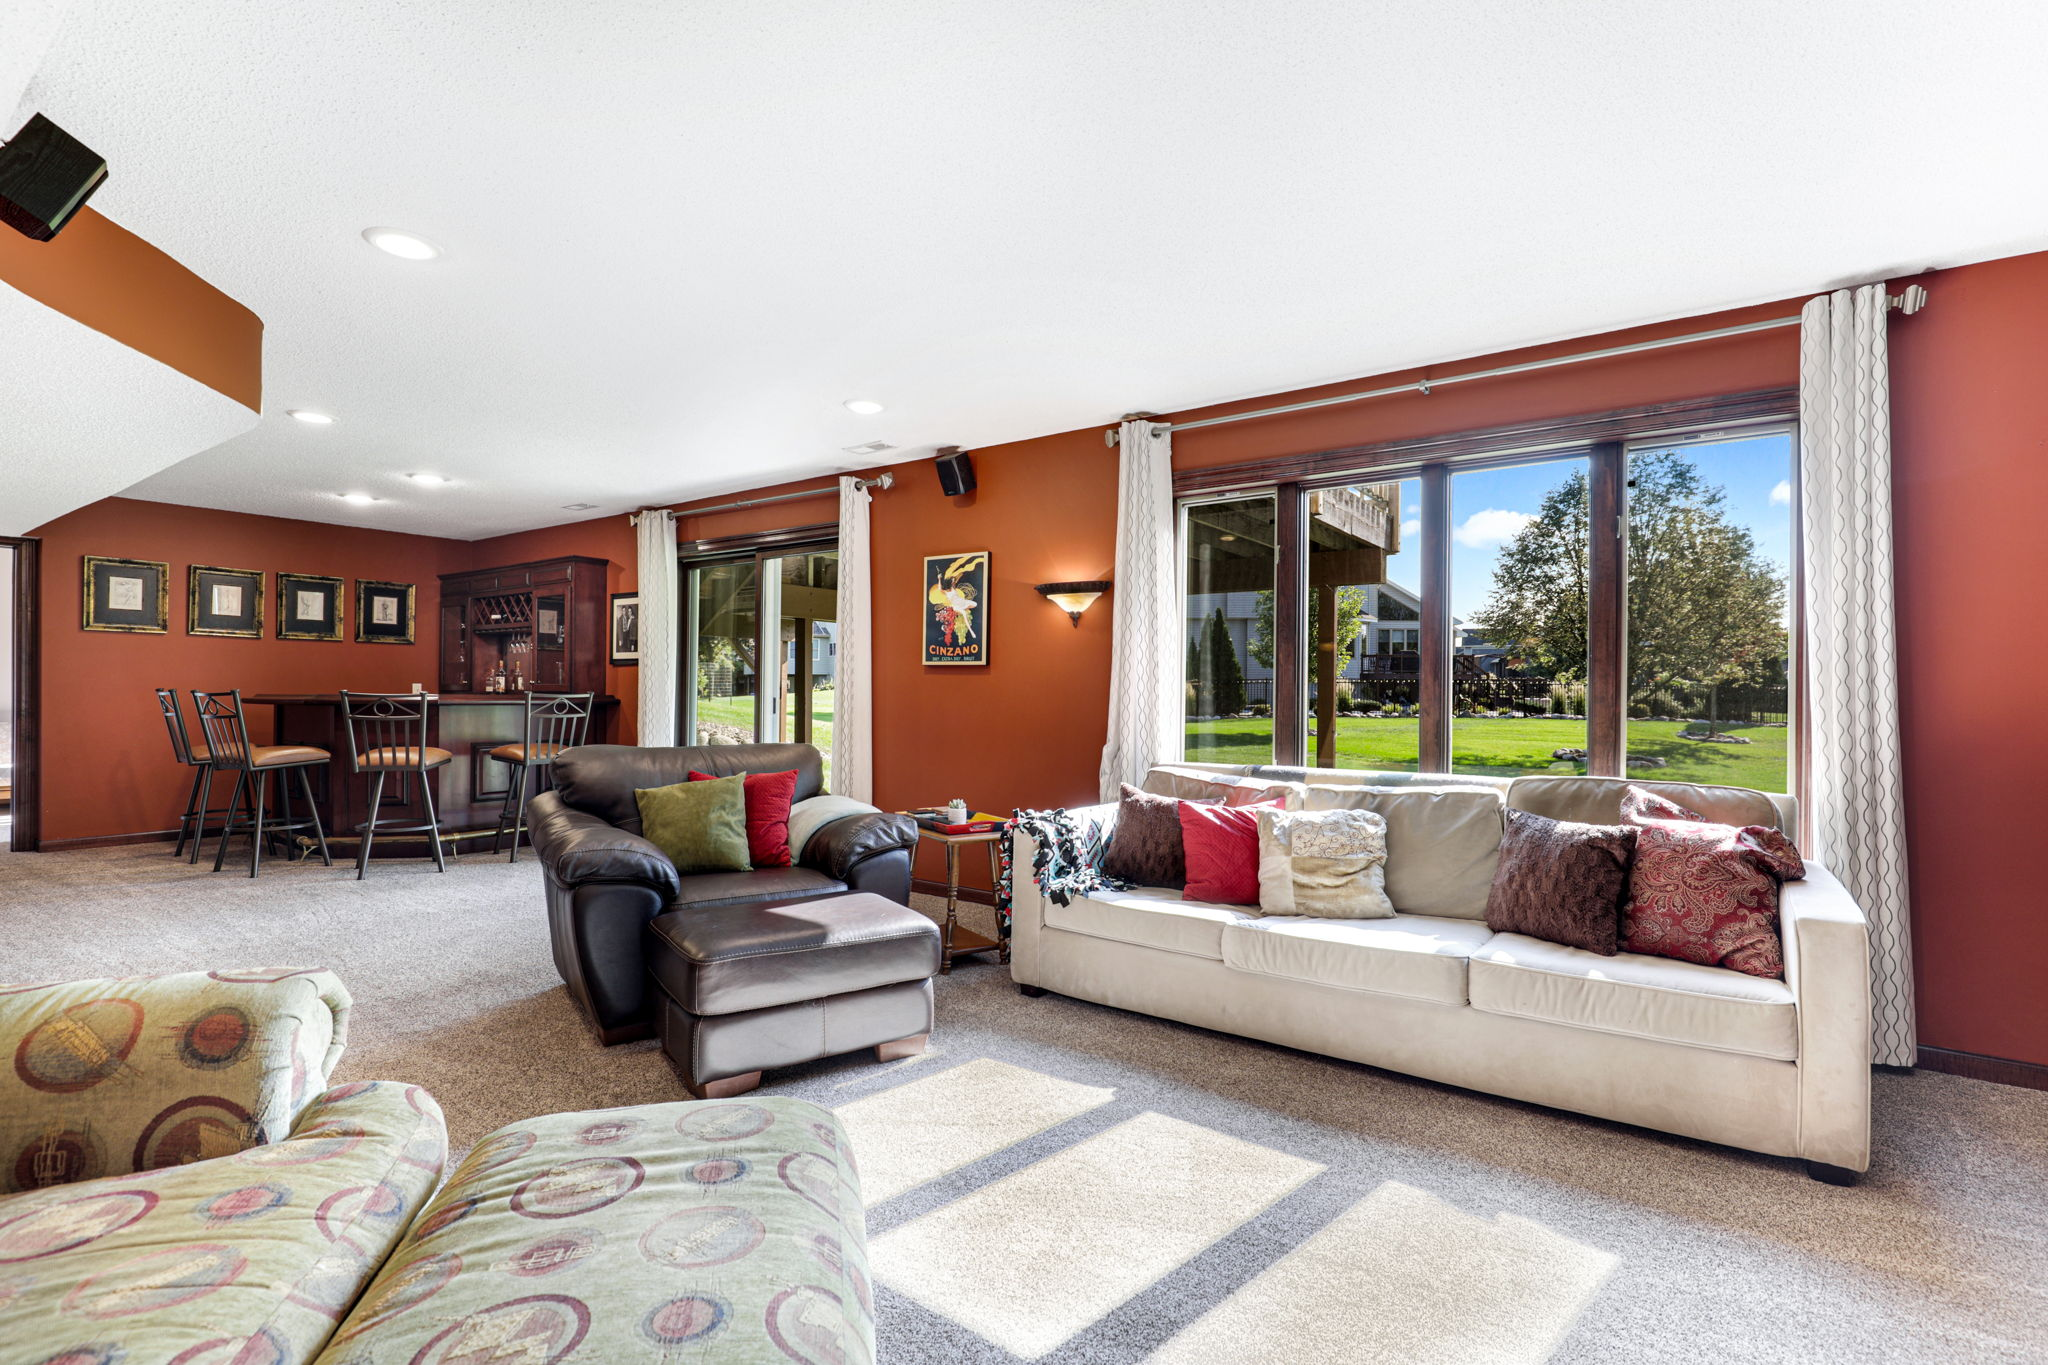 6652 Clearwater Creek Dr, Lino Lakes, MN 55038, USA Photo 35